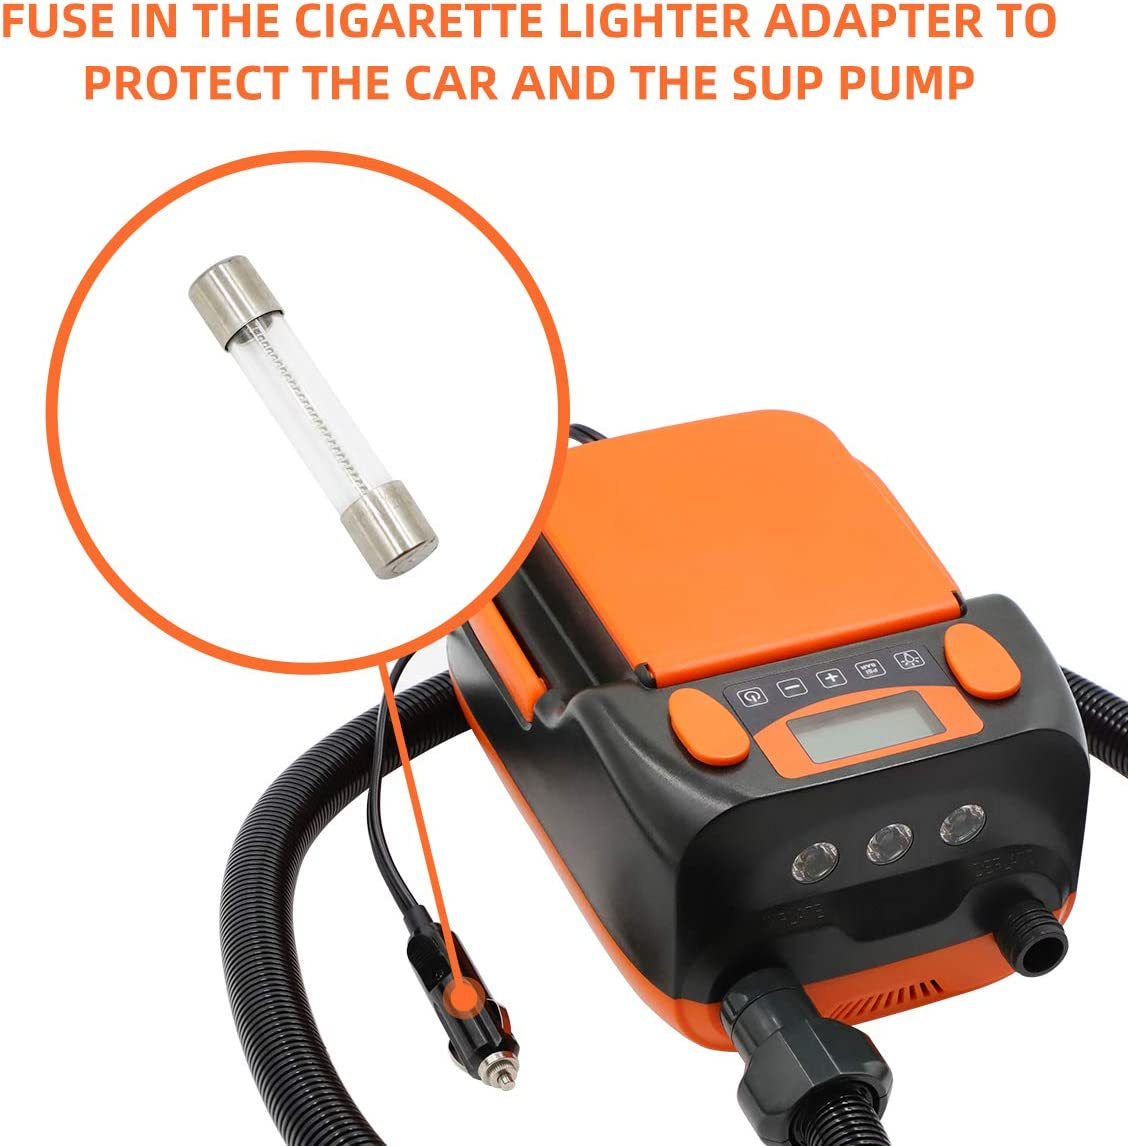 Tuomico Rechargeable Inflating Paddle Board Electric Air Pump 16PSI with Built-in 6000mAh Li-on Battery,ISUP Pump for Inflatable SUP,Kayak,Tent with Inflation and Deflation Function